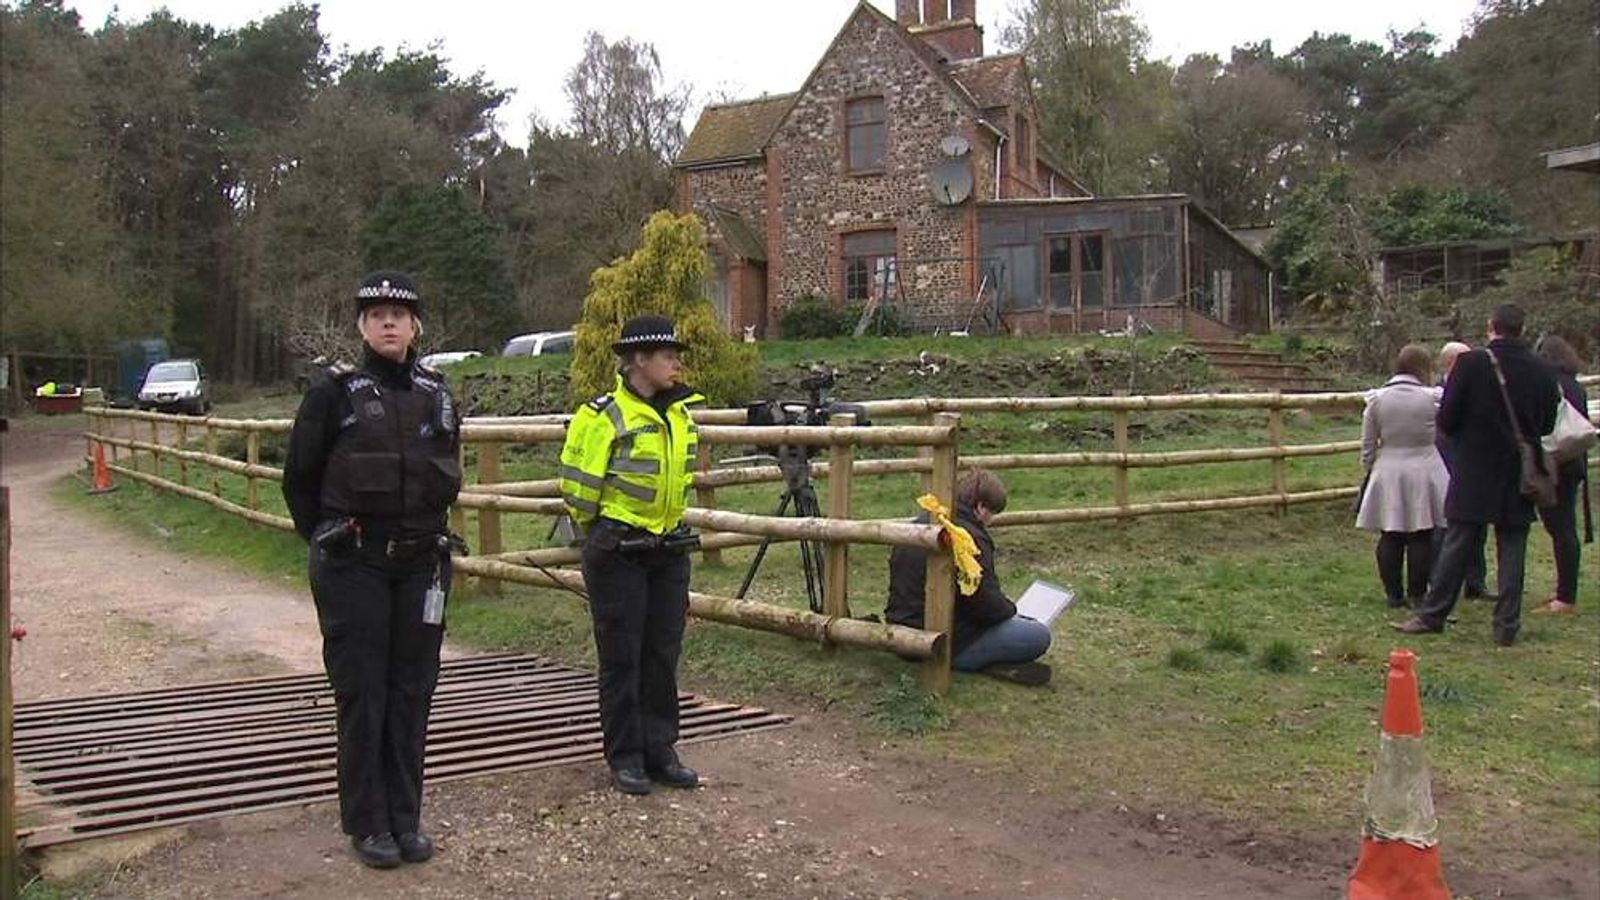 Two women shot dead at a property near Farnham